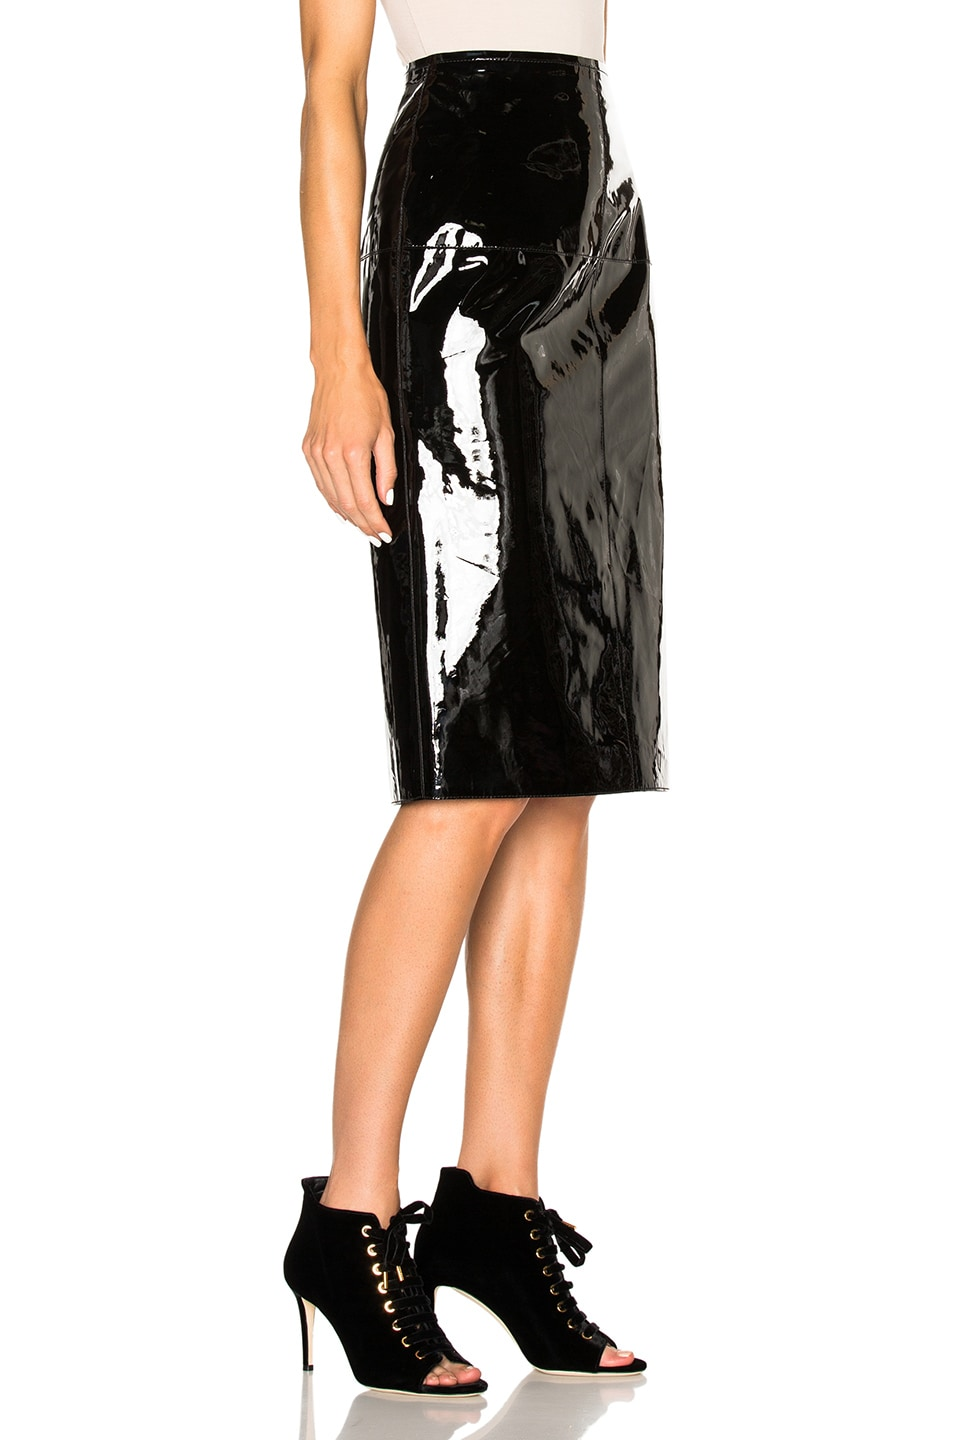 lanvin patent leather skirt in black fwrd